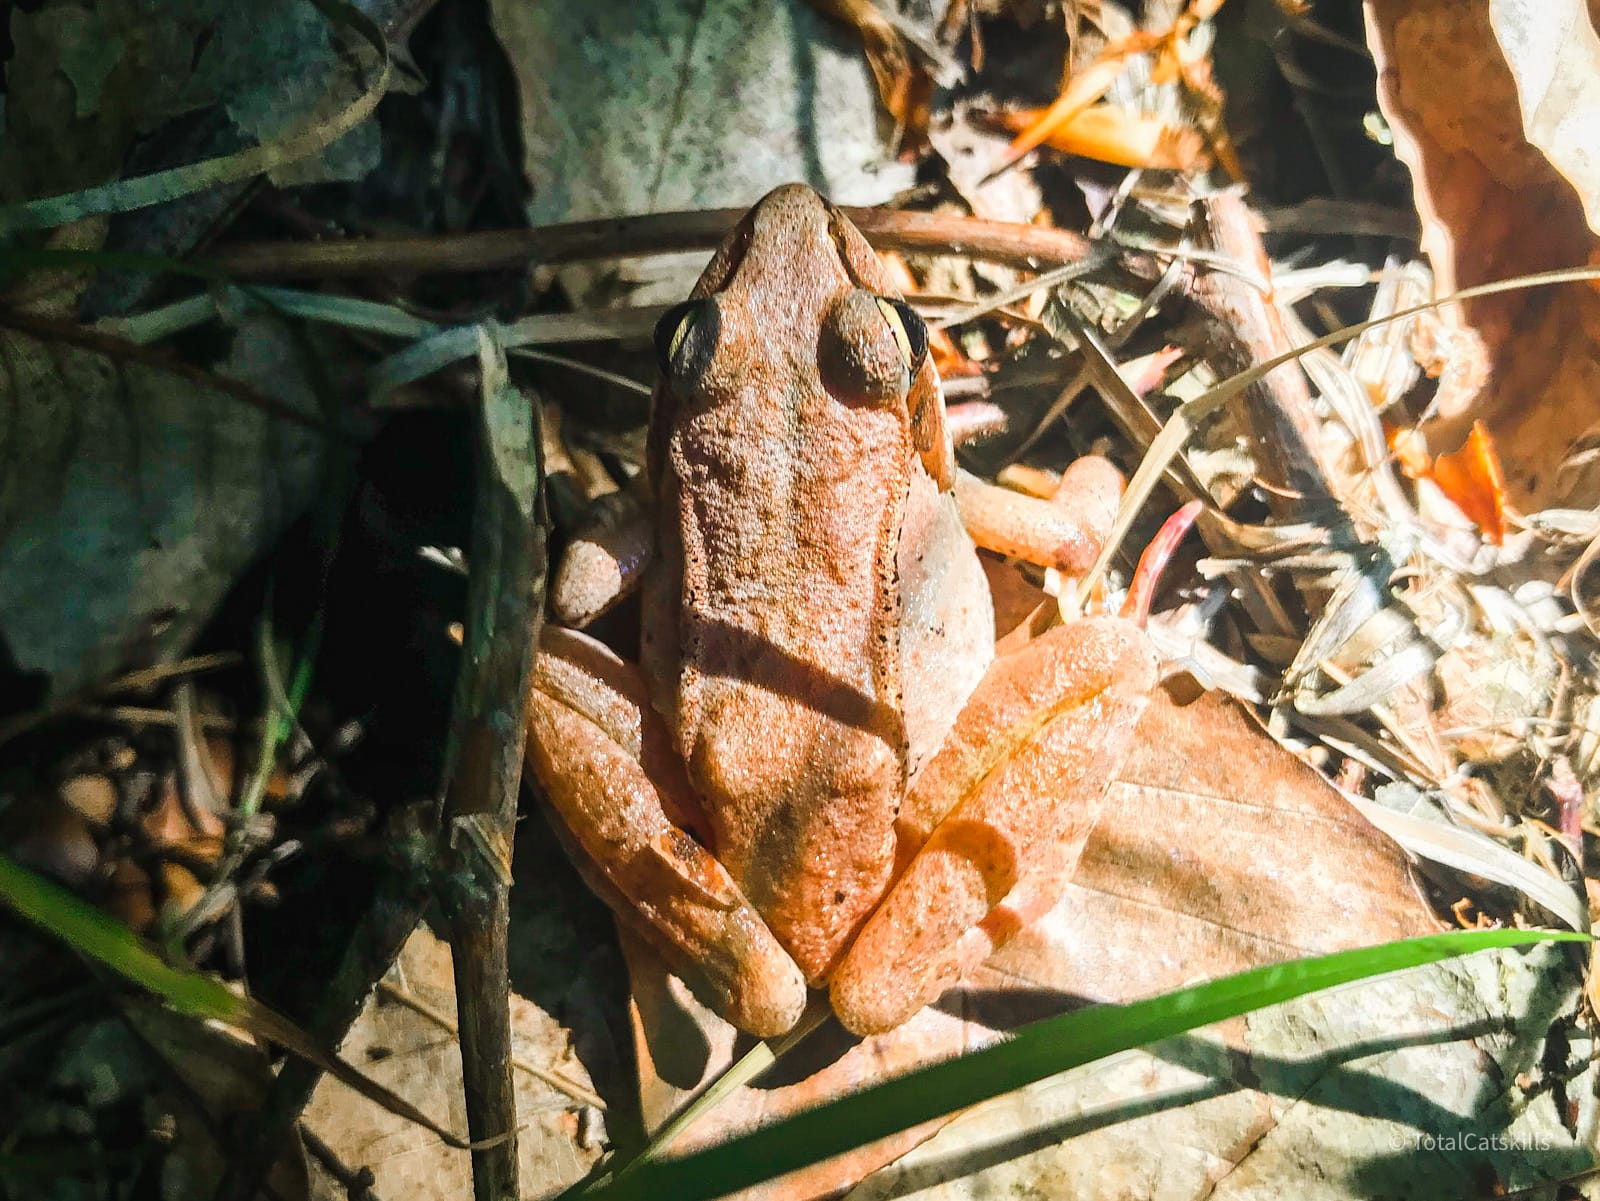 wood frog among grass and dried foliage